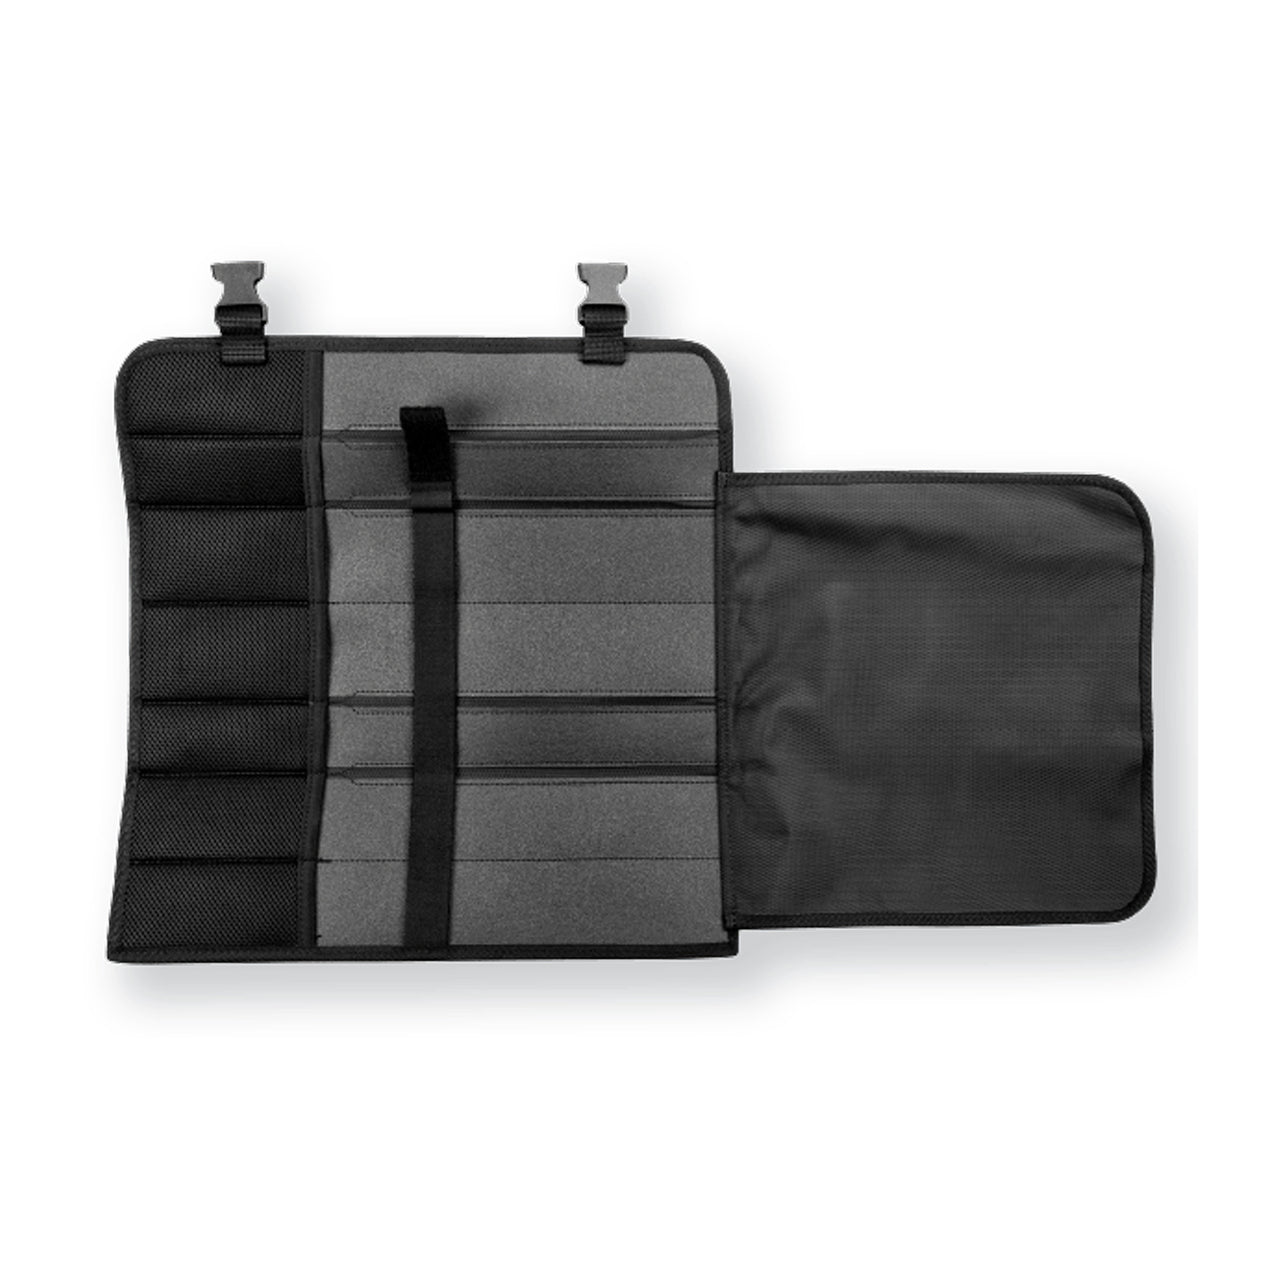 Kai Shun Knife Bag